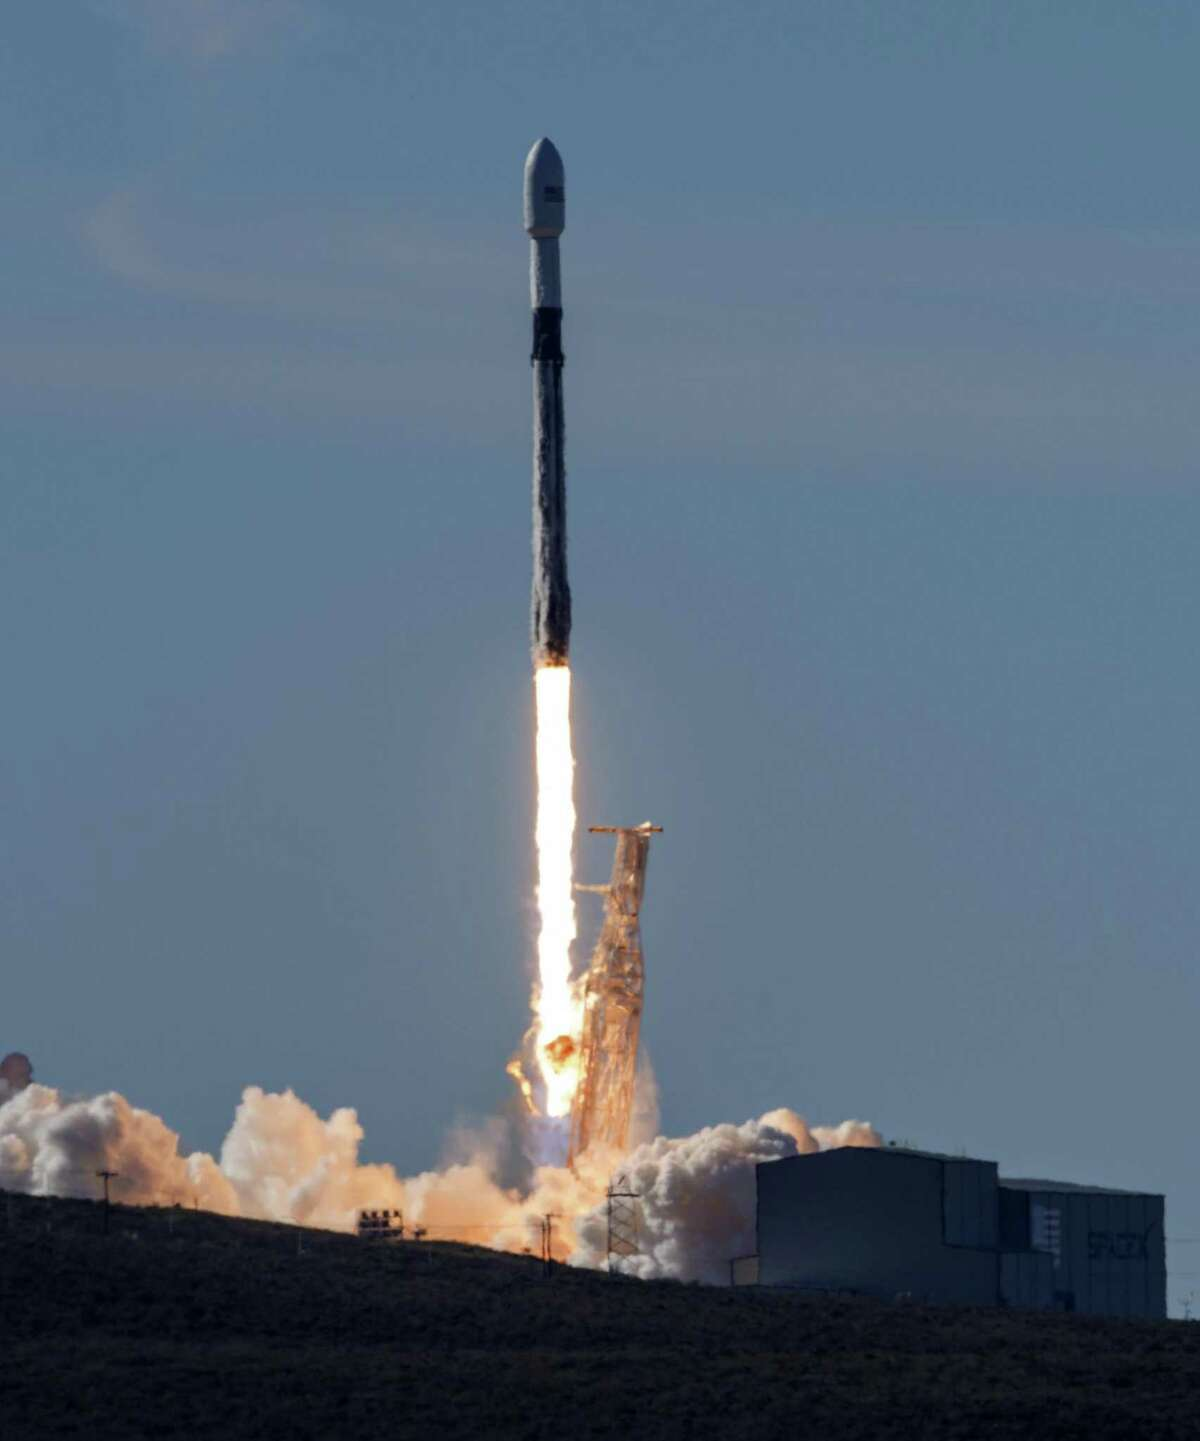 A SpaceX Falcon 9 rocket carrying the Spaceflight SSO-A: SmallSat Express launches from Vandenberg AFB in California this month. Enhancing and protecting the nation's military space capabilities will require a variety of measures.